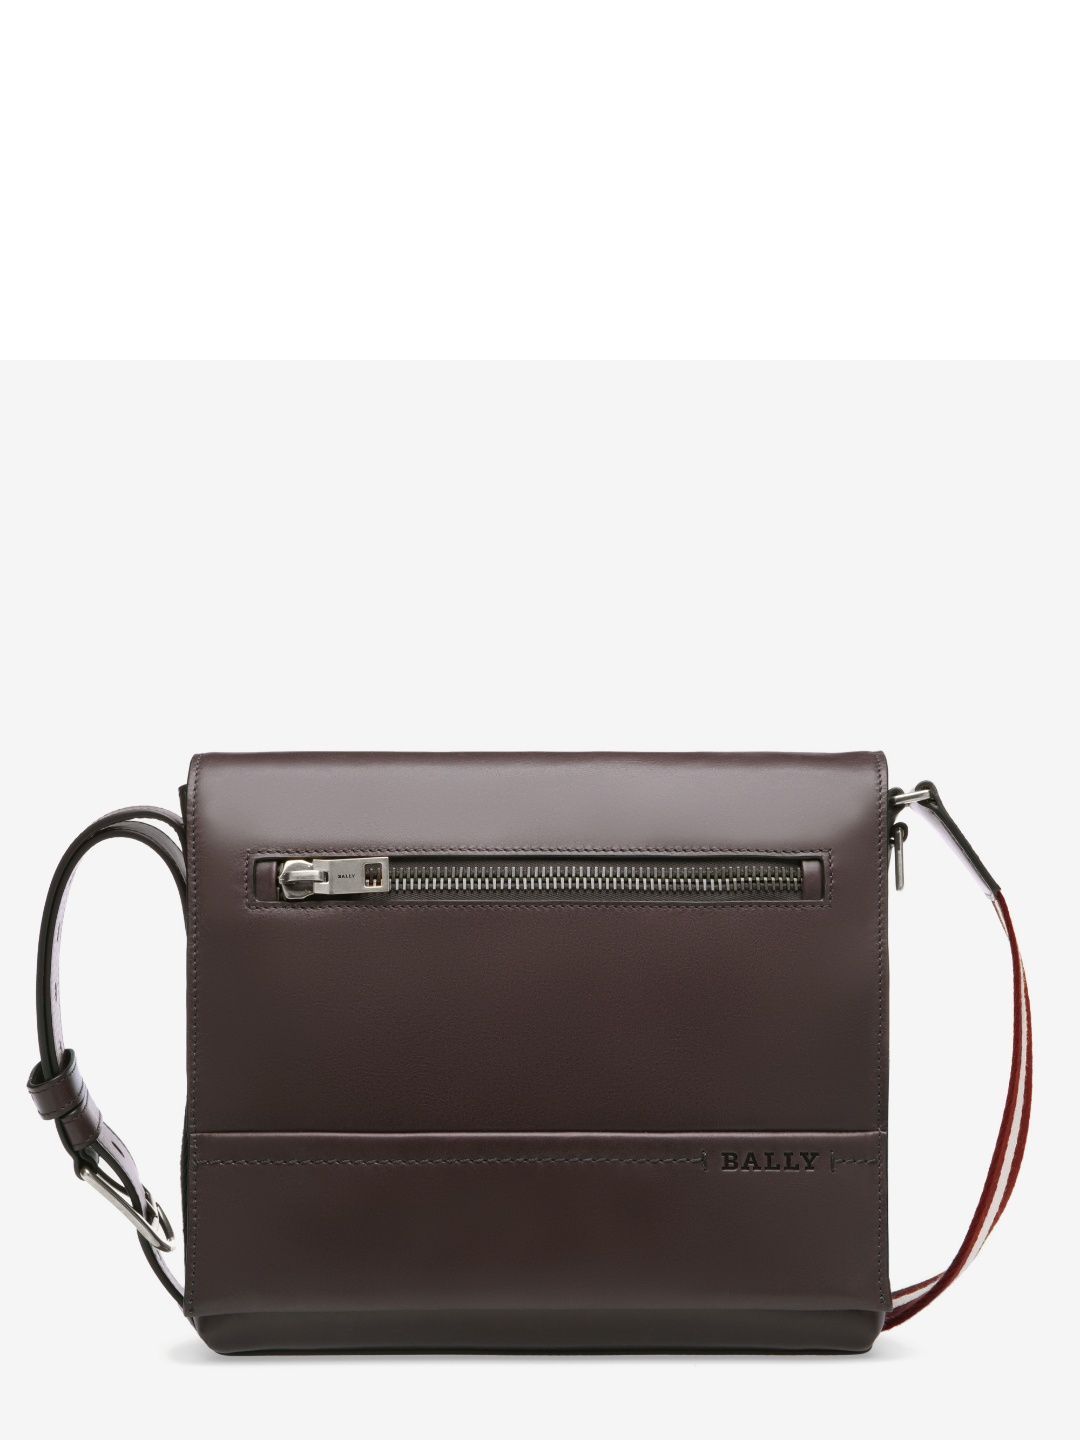 BALLY .  bally  bags  shoulder bags  leather   2ebd5503f5c87